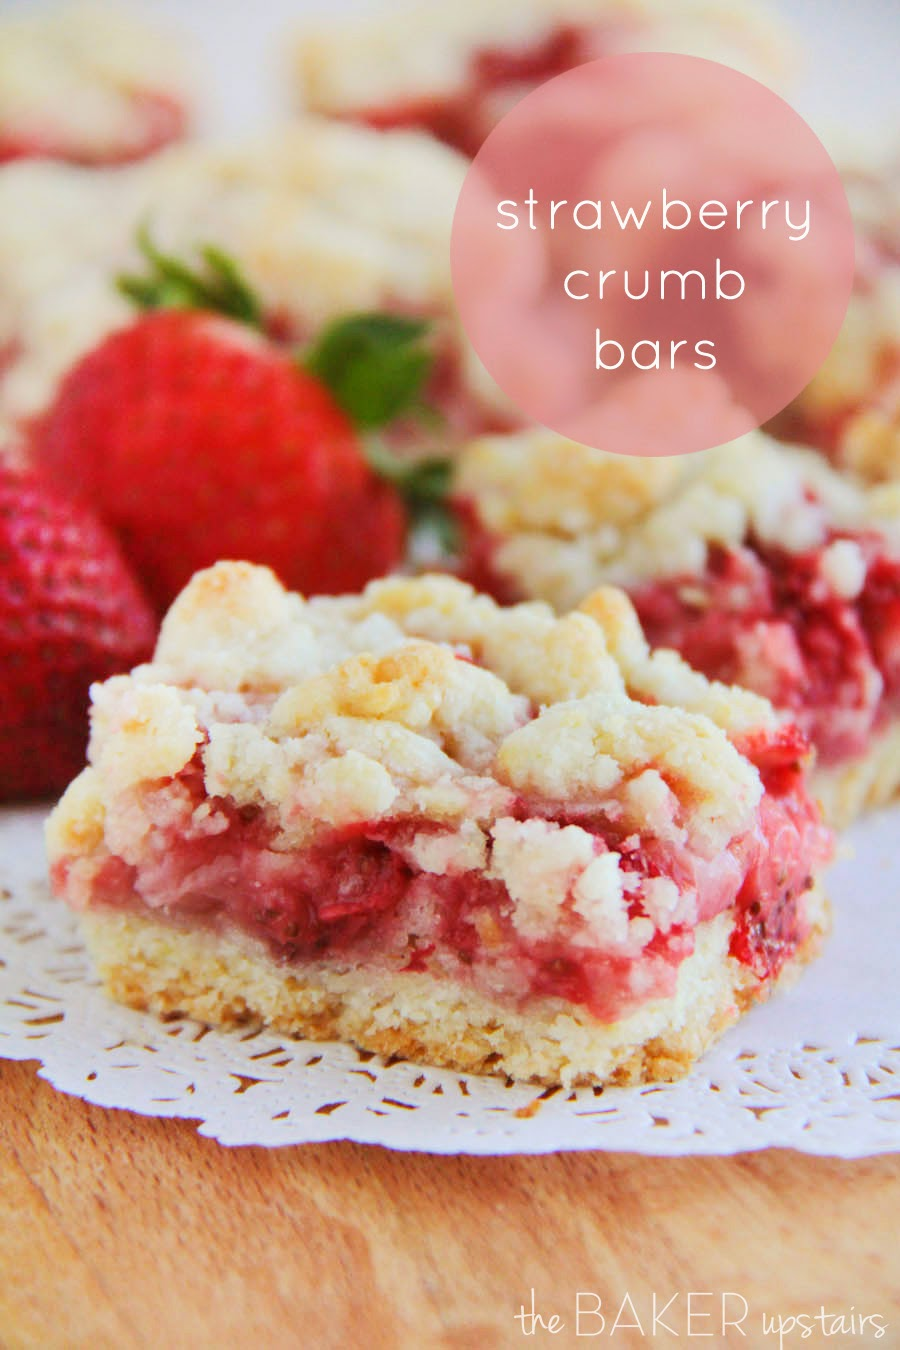 These sweet and irresistible strawberry crumb bars are the perfect spring dessert!